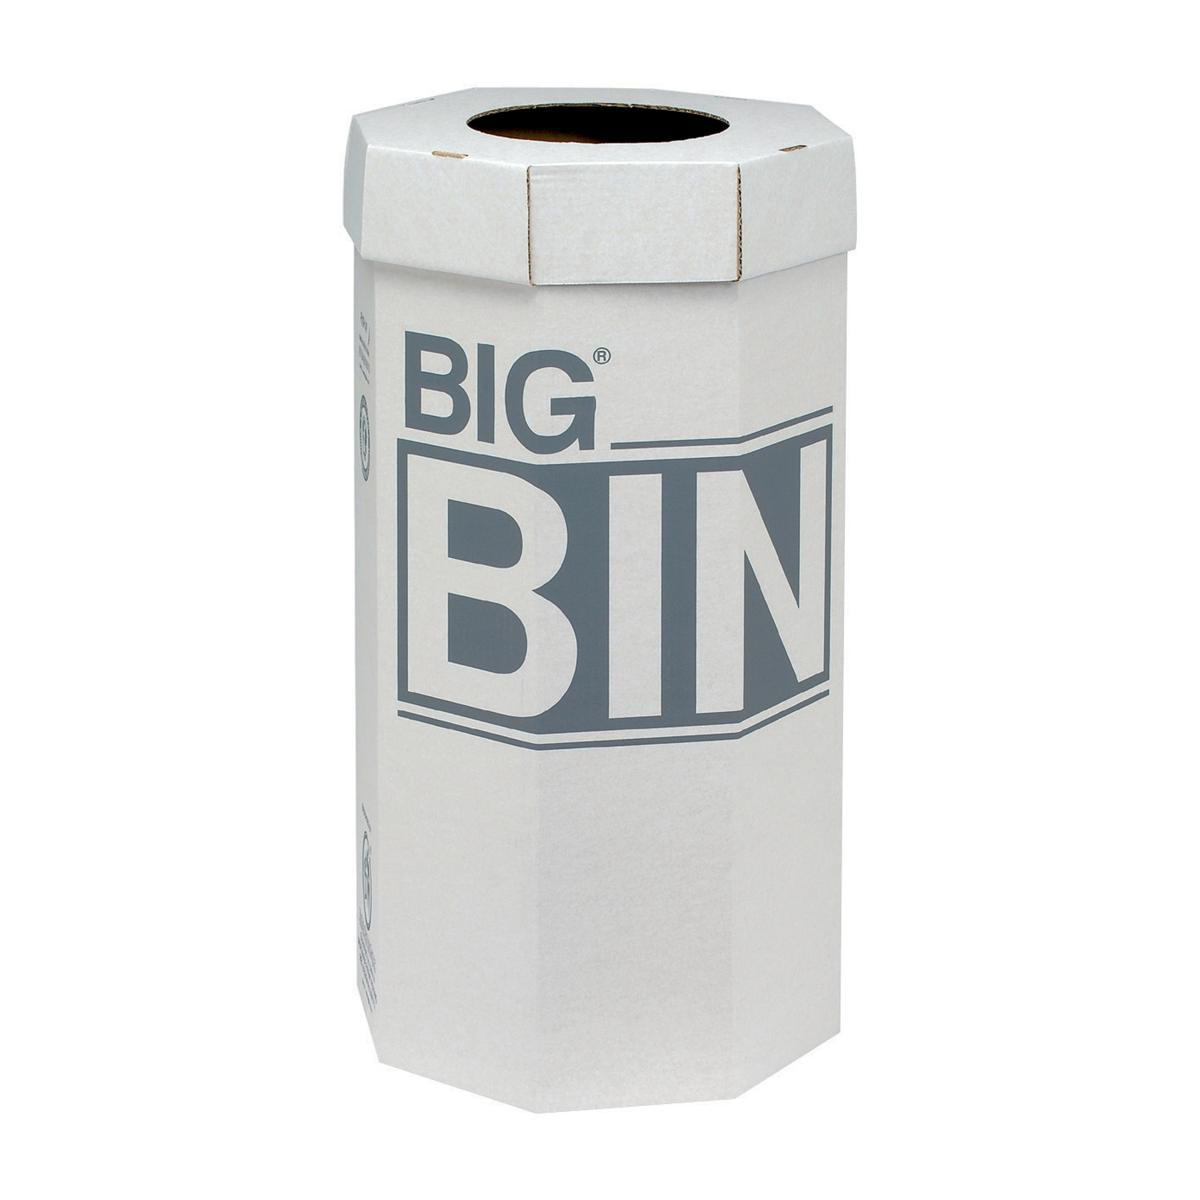 Image for Acorn Large Bin Flat Packed Recycled Board Material 160 Litres 450x900mm White Ref  [Pack 5]